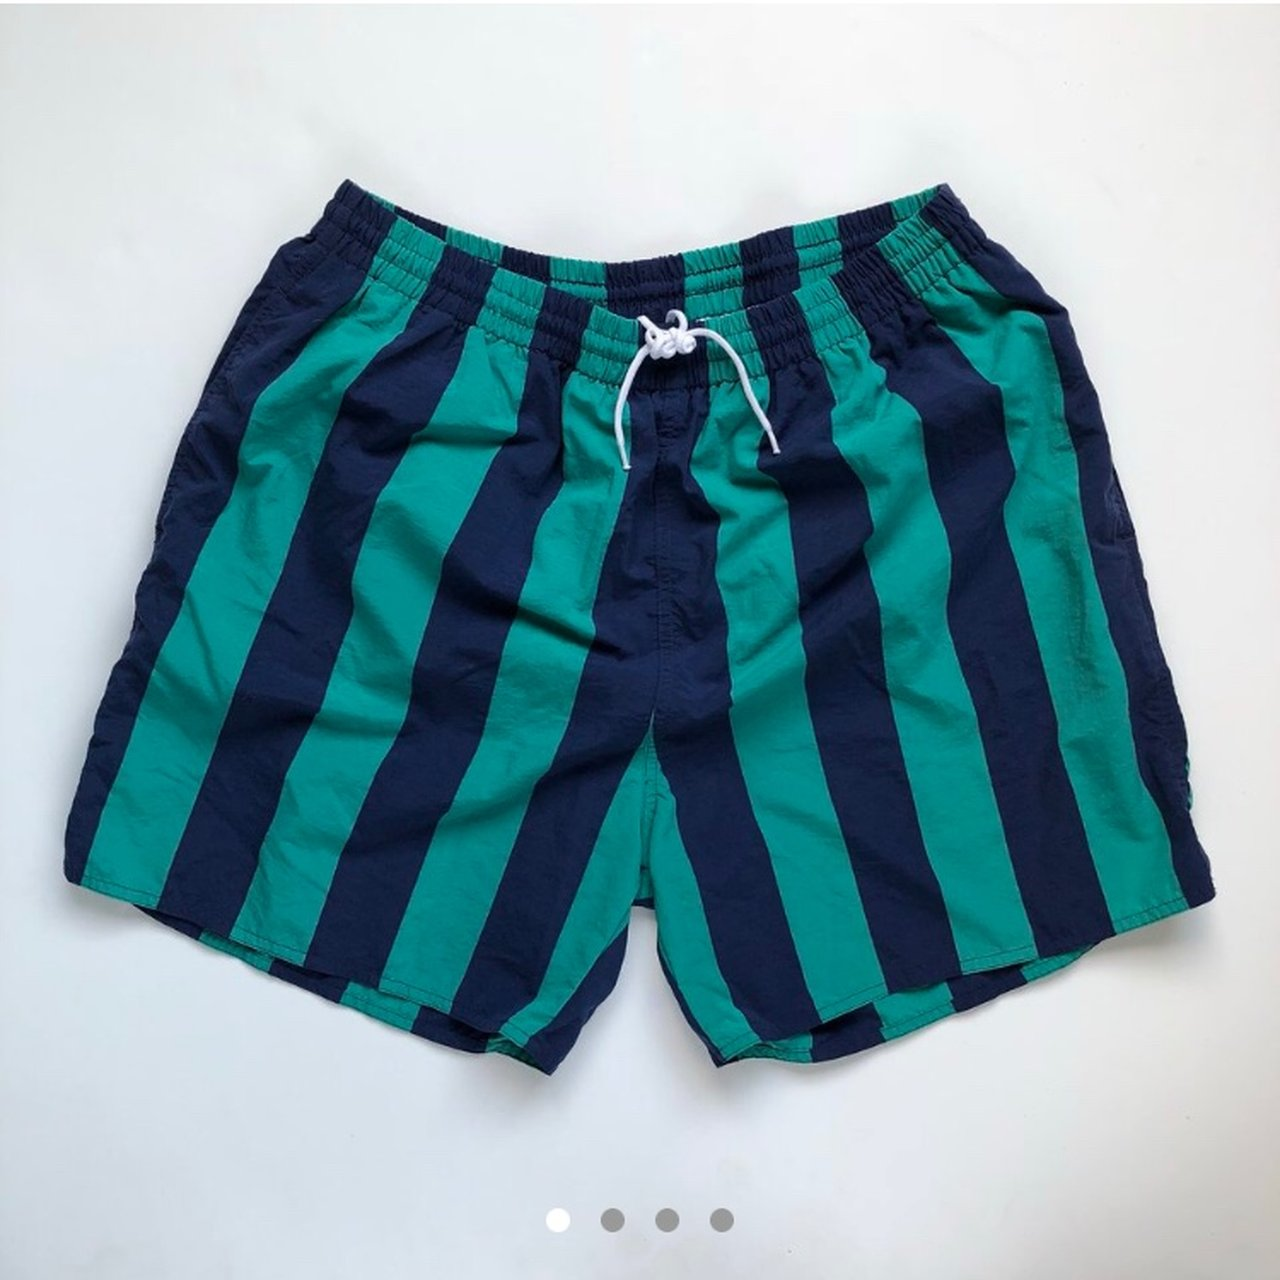 b98a3f89a1544 vintage Eddie Bauer men's swim trunks. these are a re-pop! a - Depop